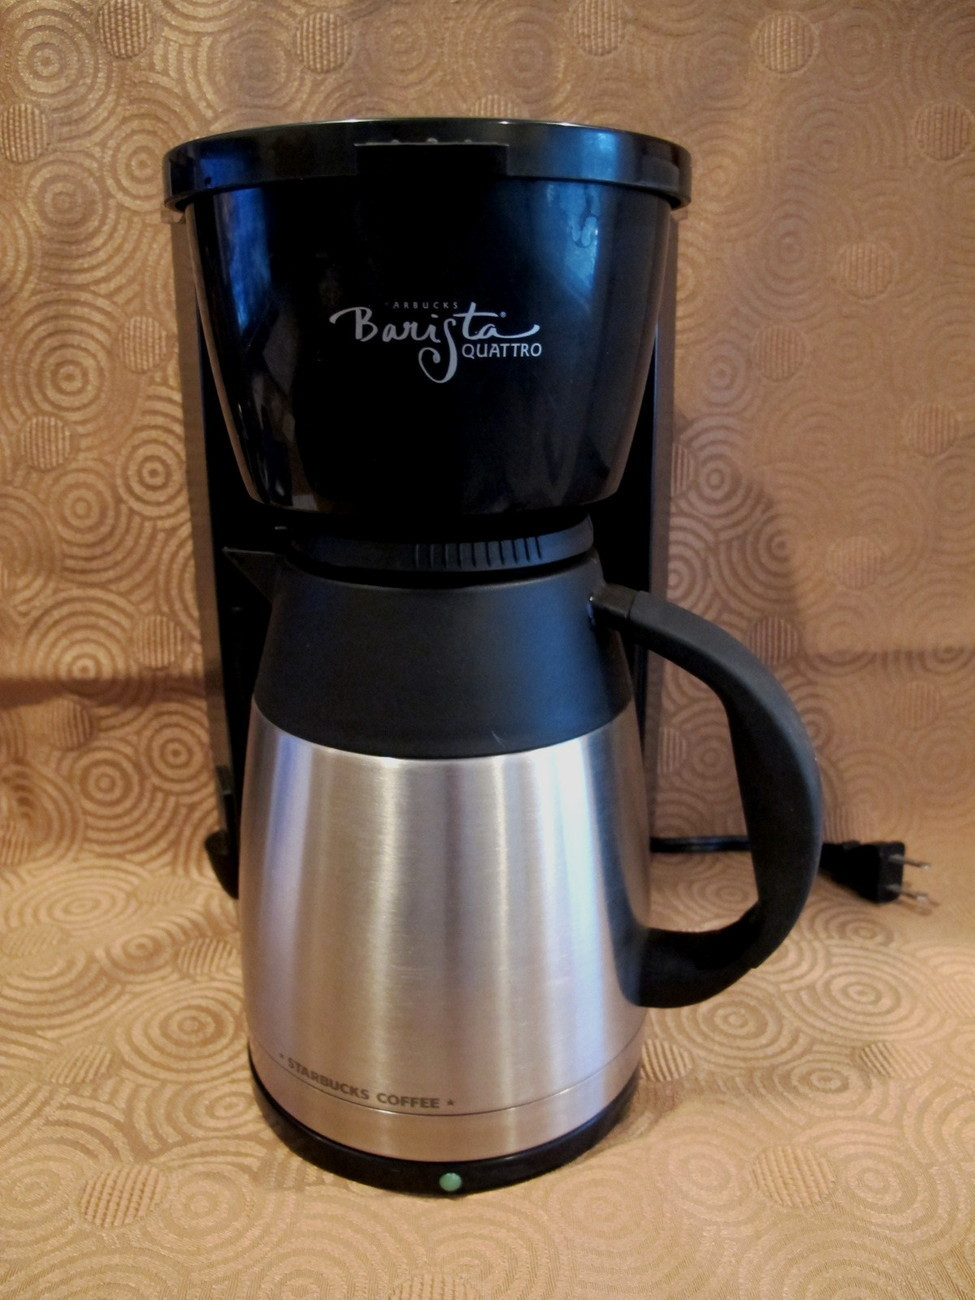 Primary image for Starbucks Stainless Coffee Maker Machine 3 Cup Mug Barista Quattro Pot